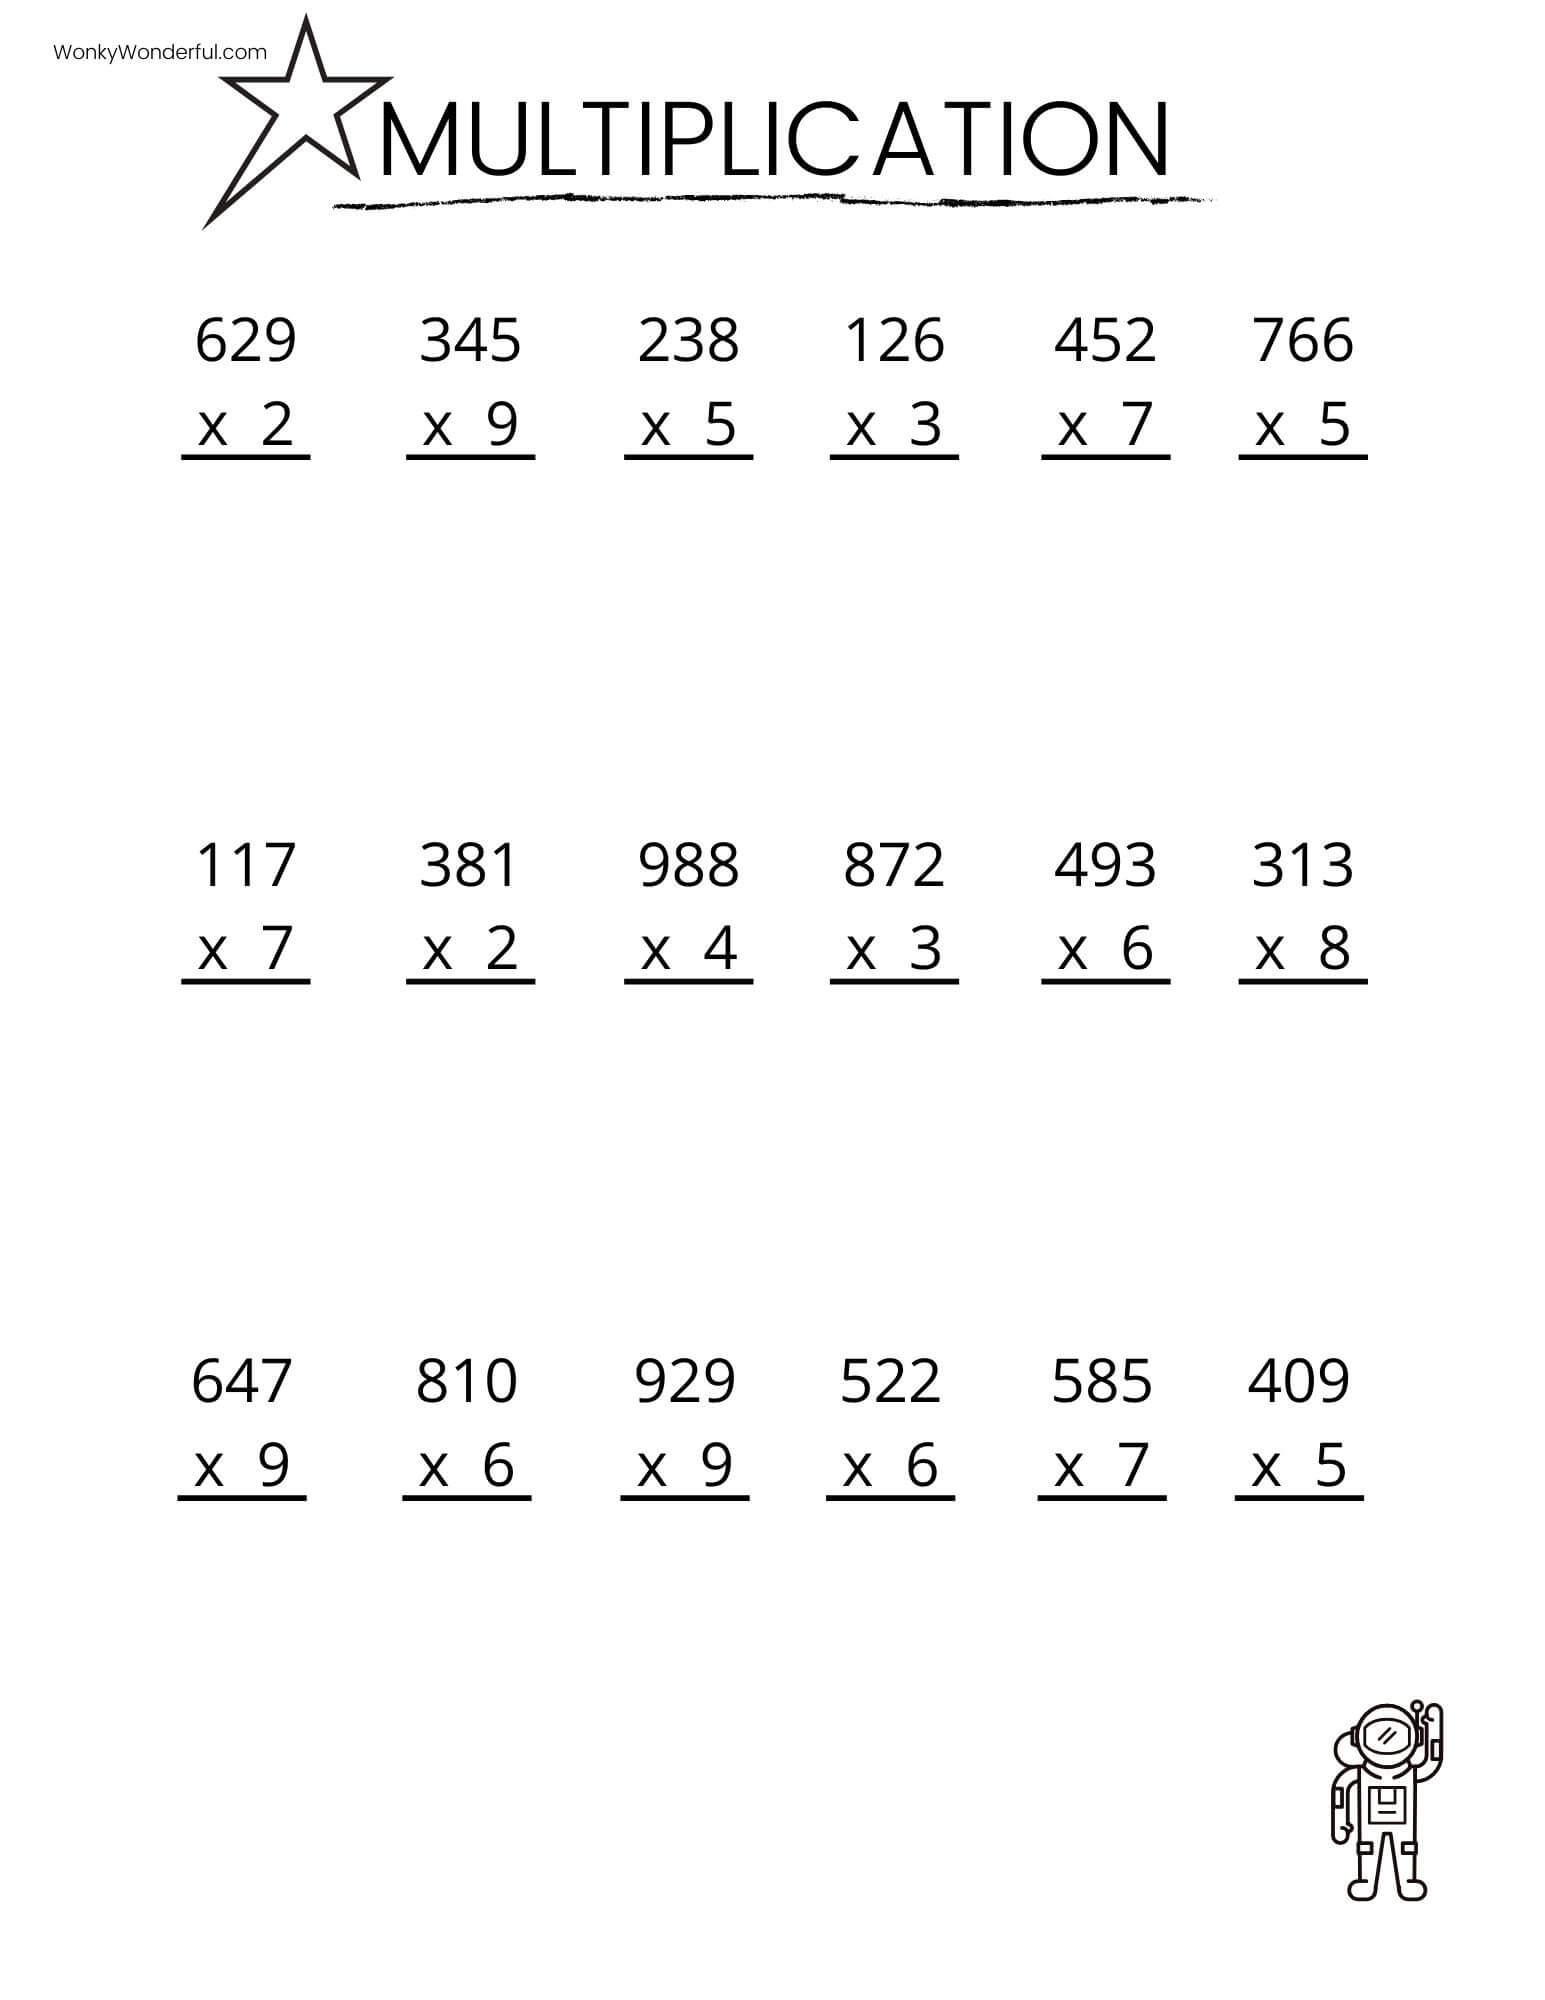 small resolution of FREE PRINTABLE MULTIPLICATION WORKSHEETS + WonkyWonderful